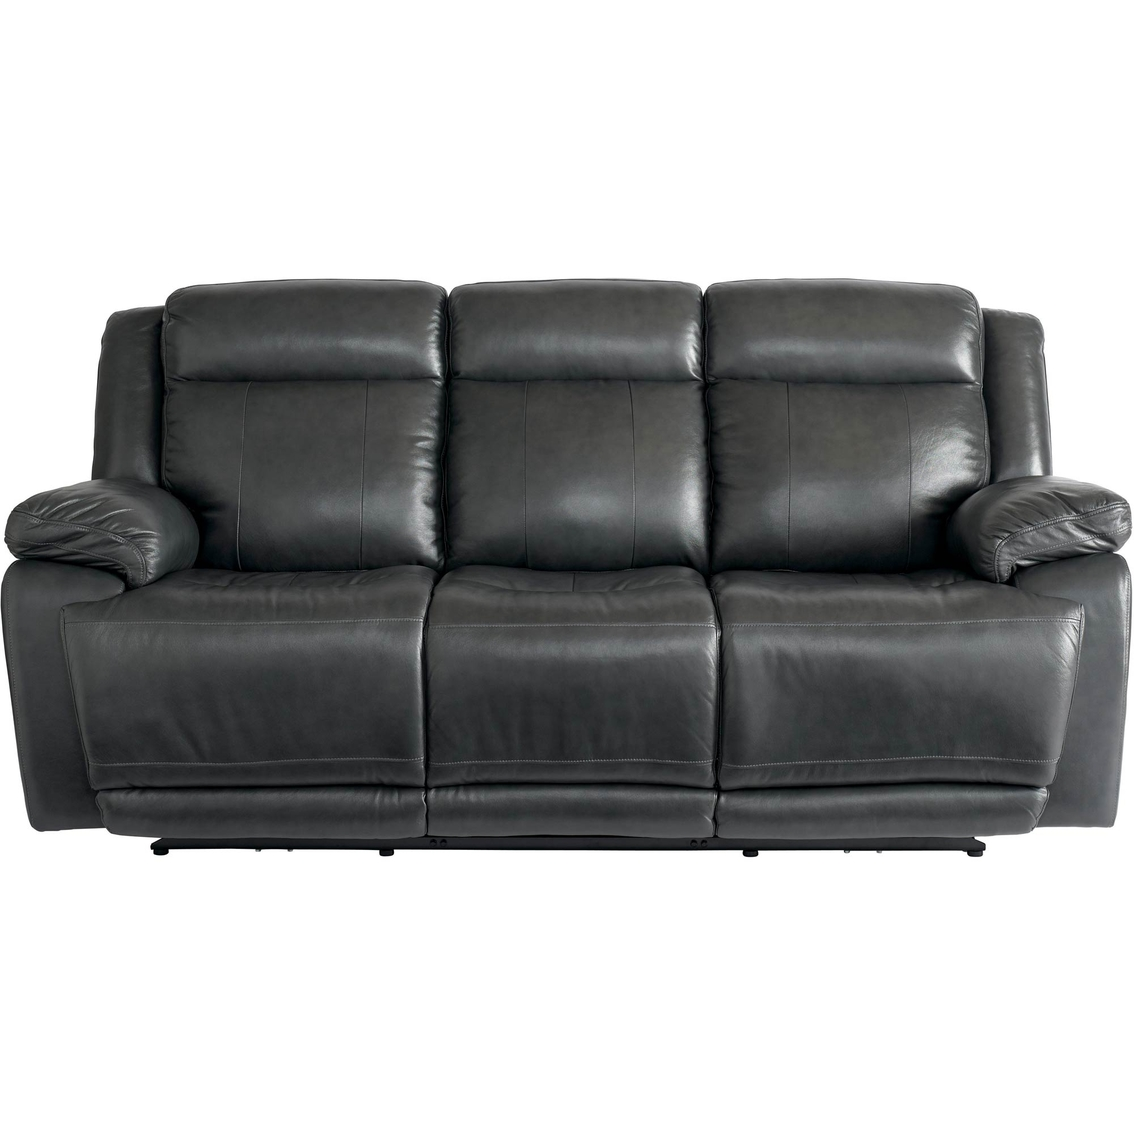 Xpress motion by bassett evo power motion sofa sofas for Furniture xpress